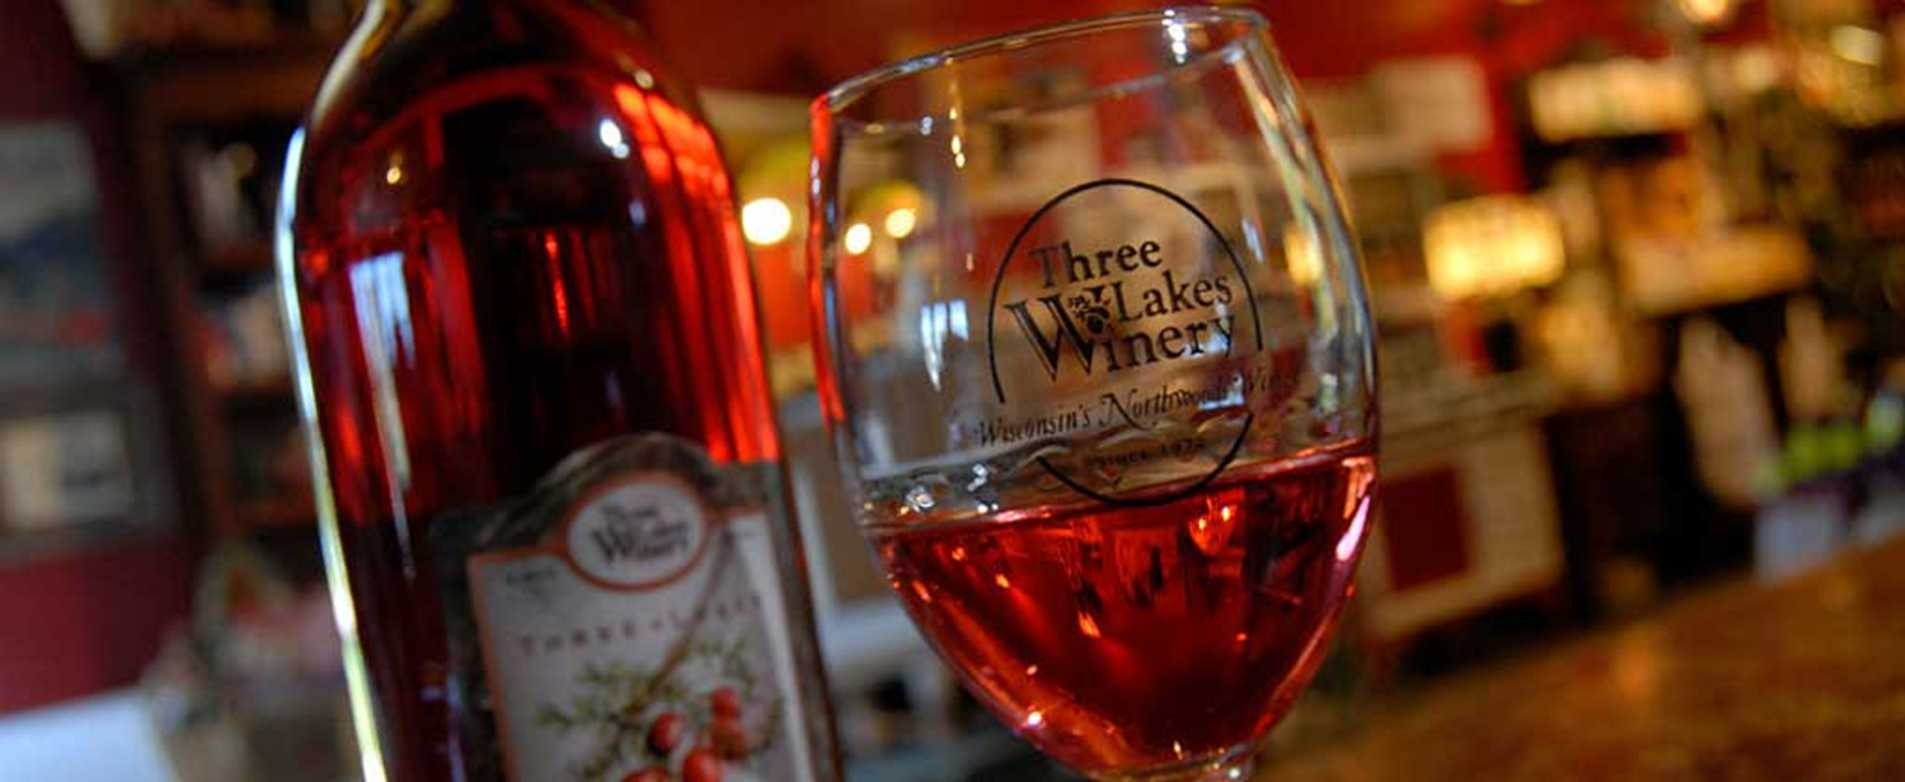 Three Lakes Winery Cranberry Marsh & Winery Tours